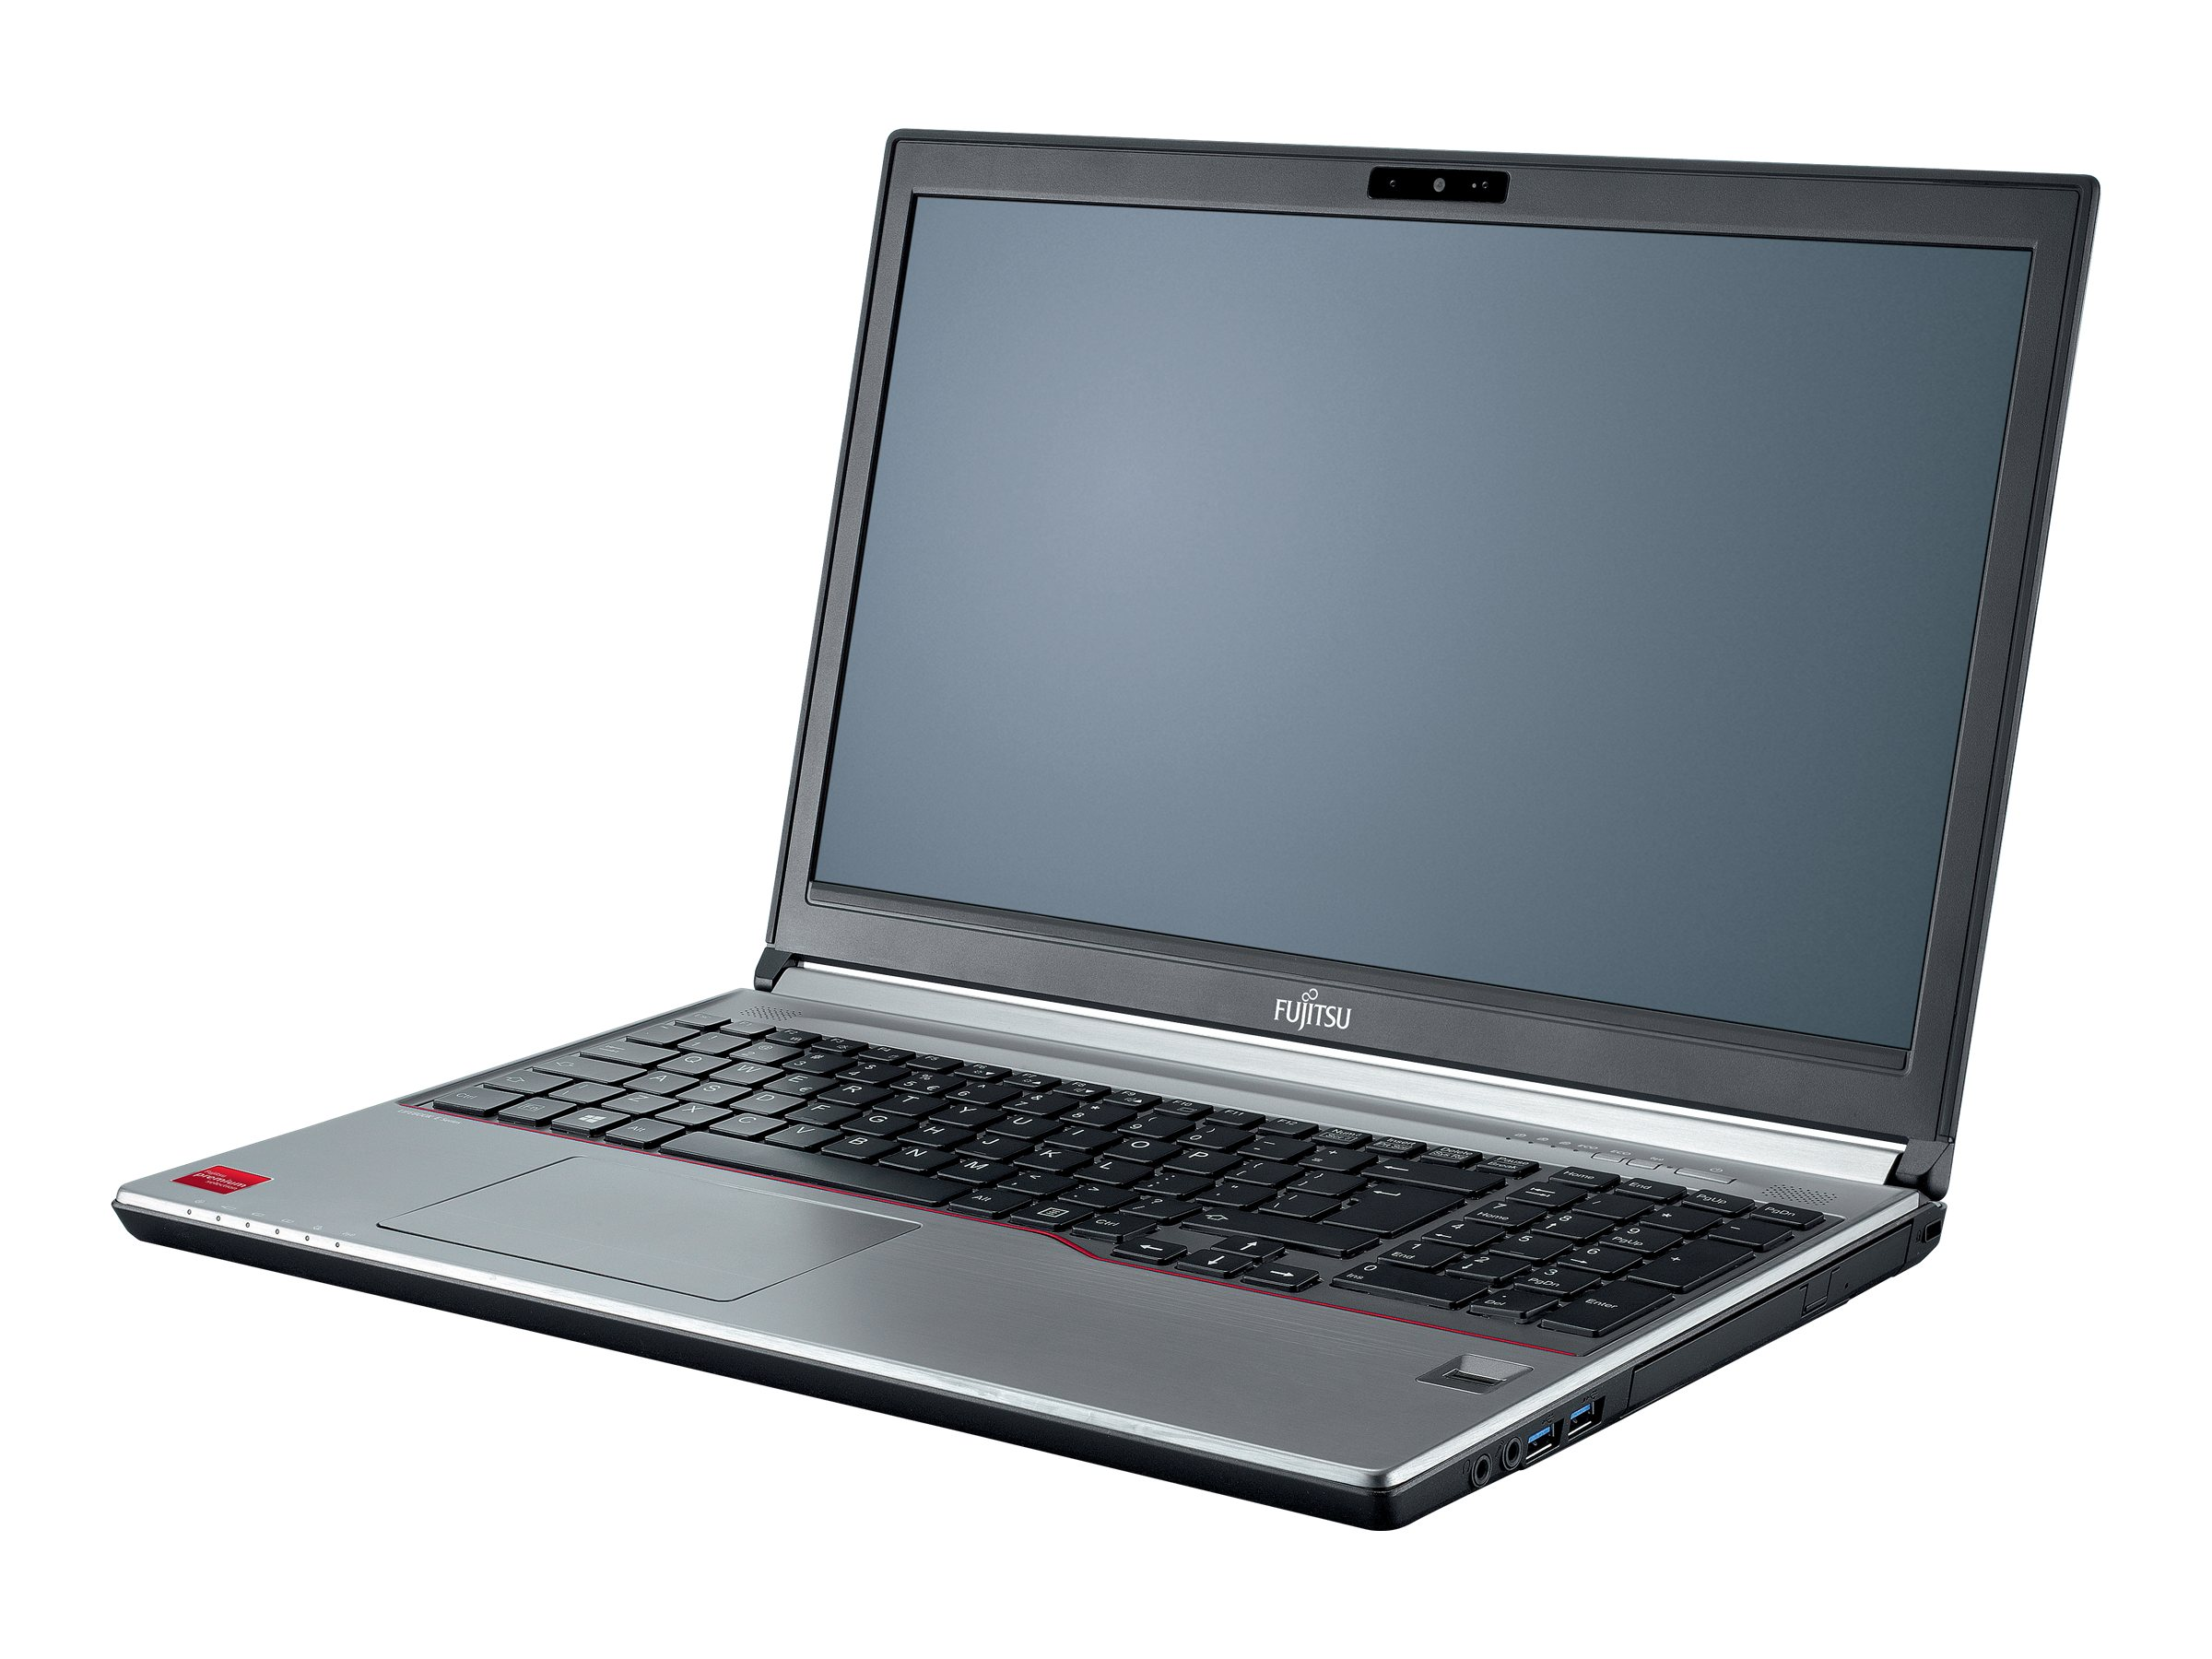 Fujitsu LifeBook E754 2.6GHz Core i5 15.6in display, SPFC-E754-003, 19138587, Notebooks